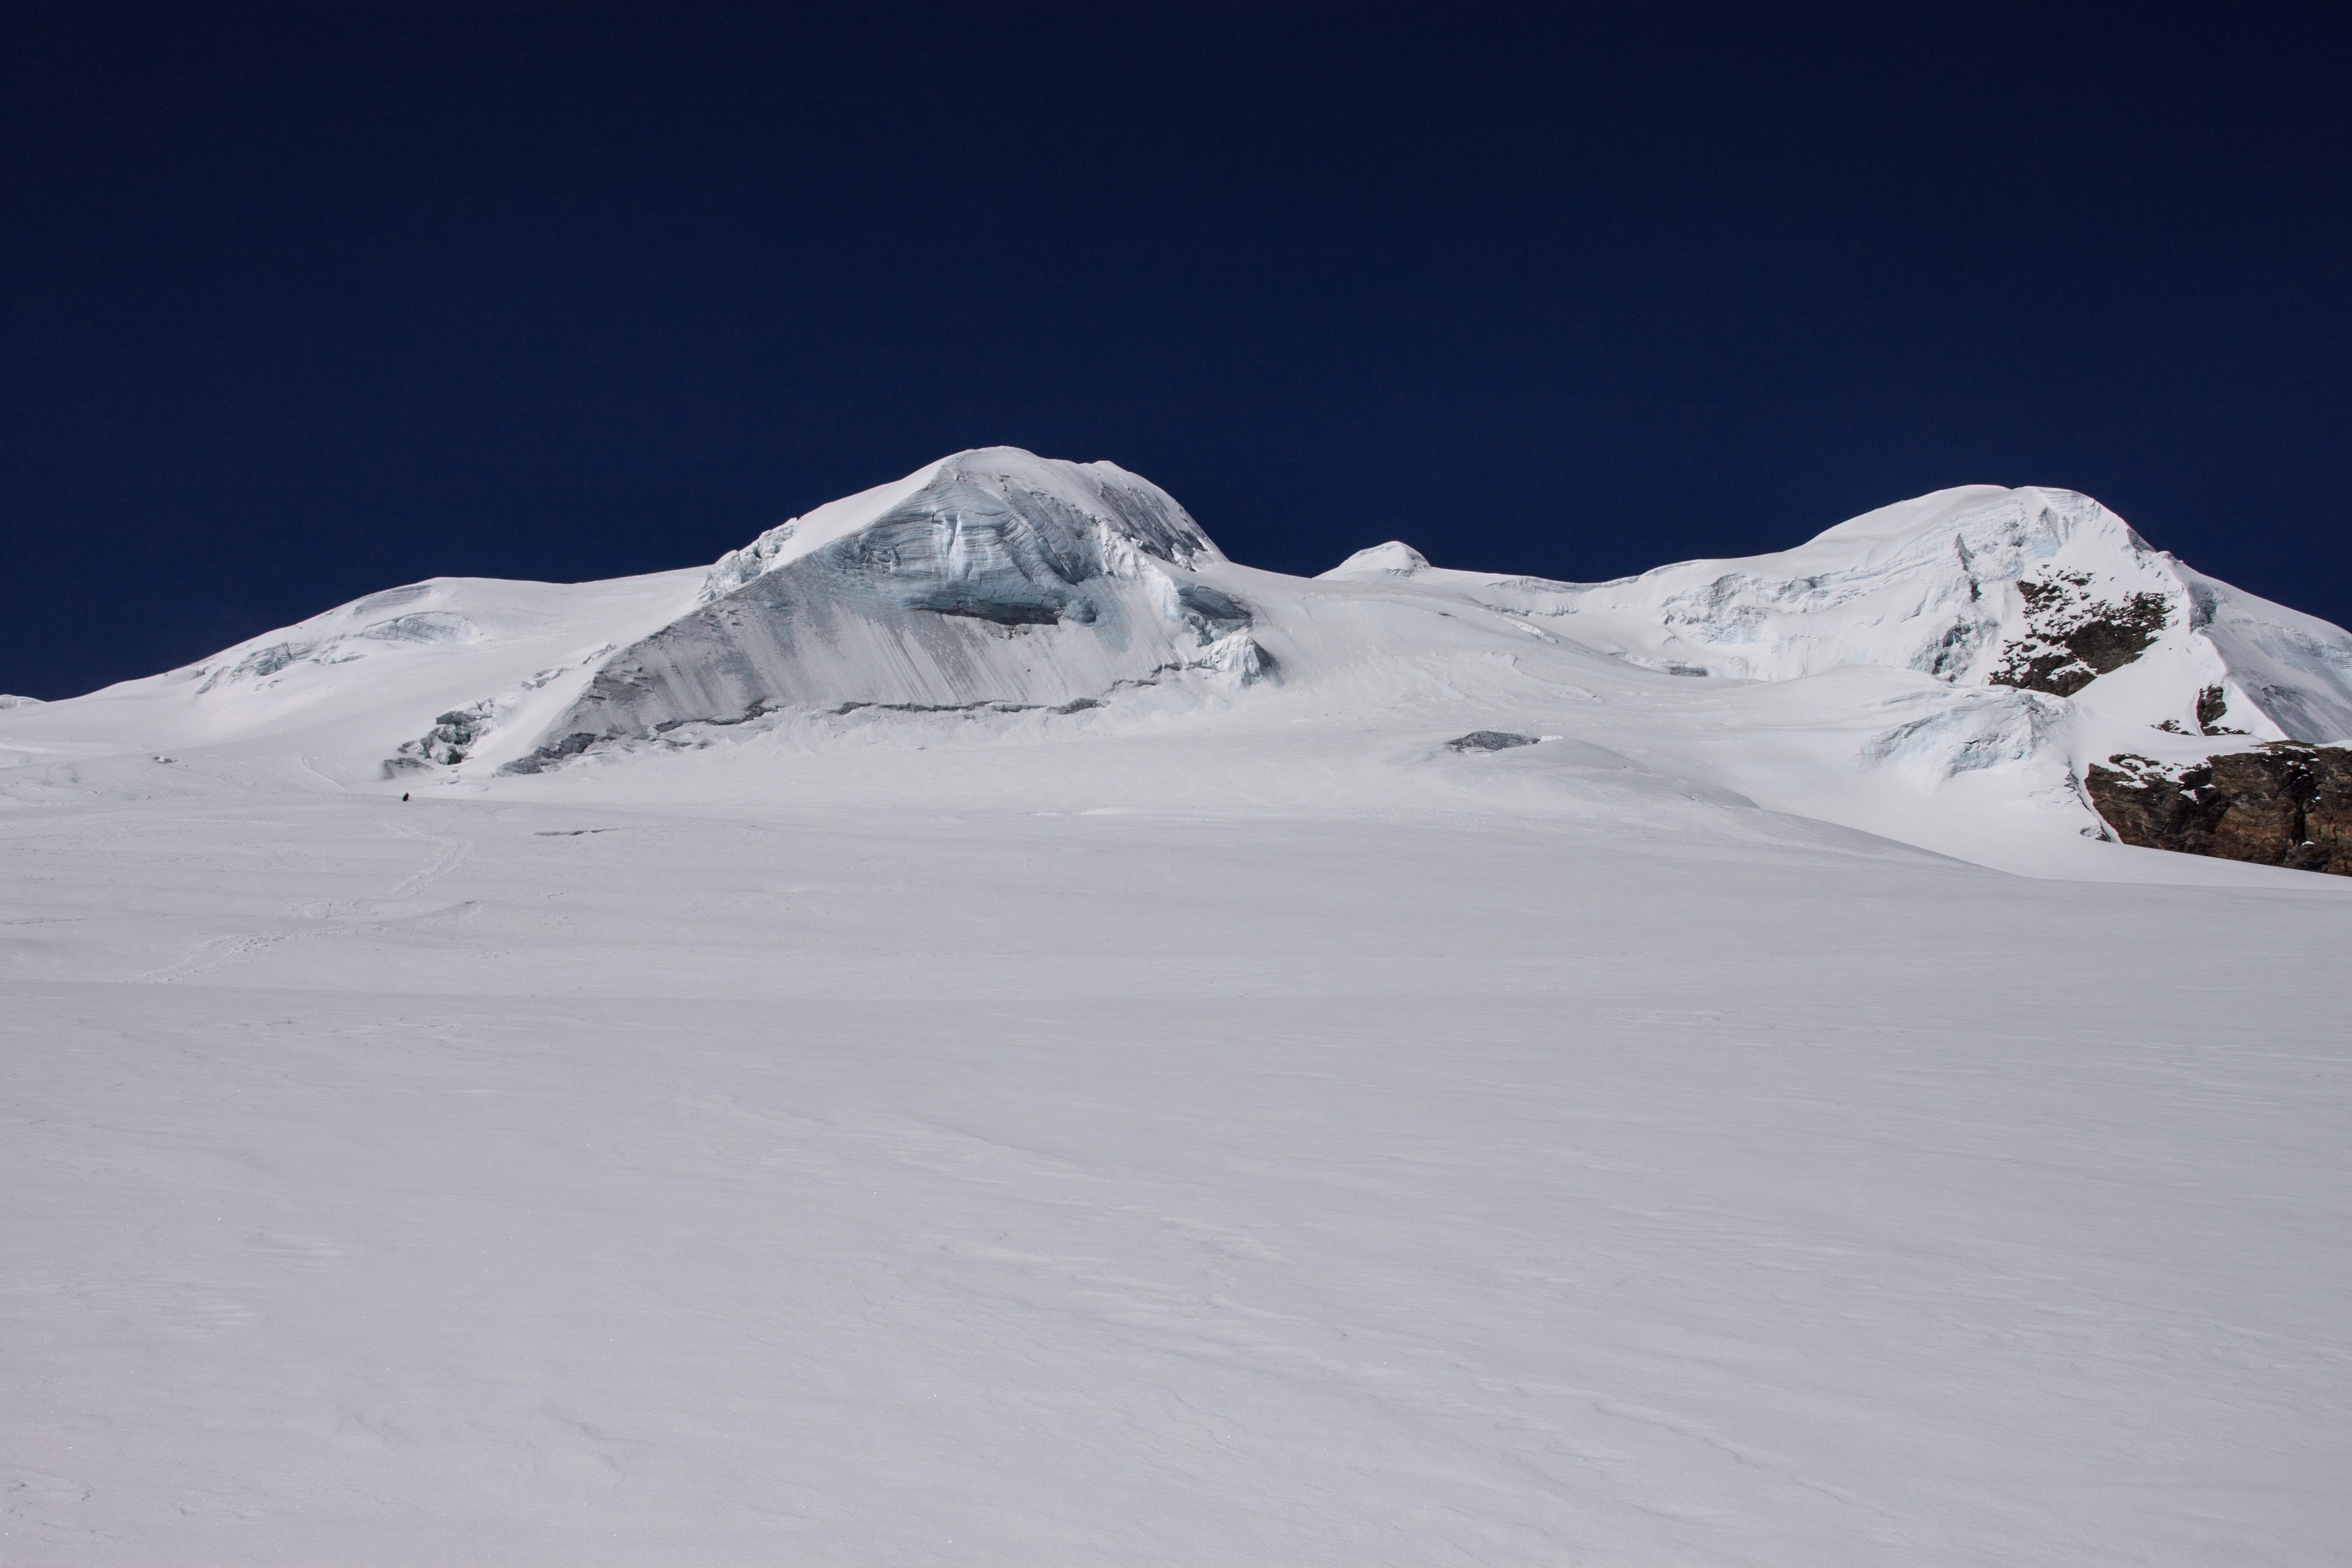 Final slopes leading to the summit of Mera Peak